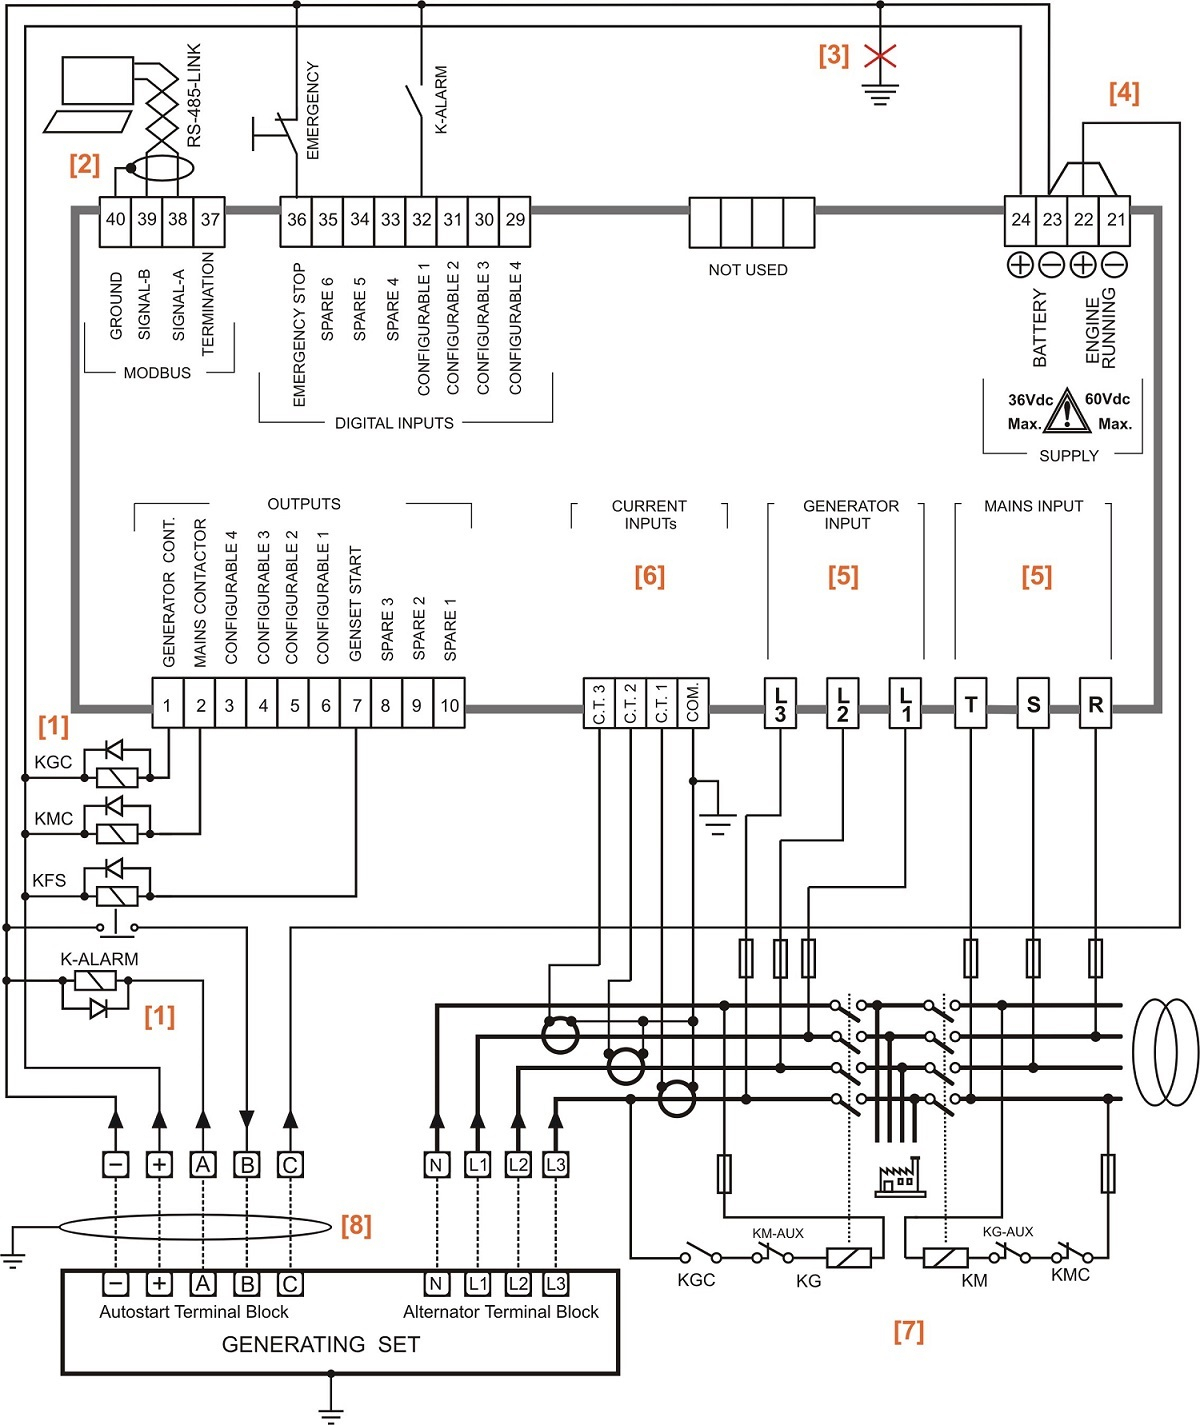 [WRG-2262] Automatic Transfer Switch Schematic Diagram